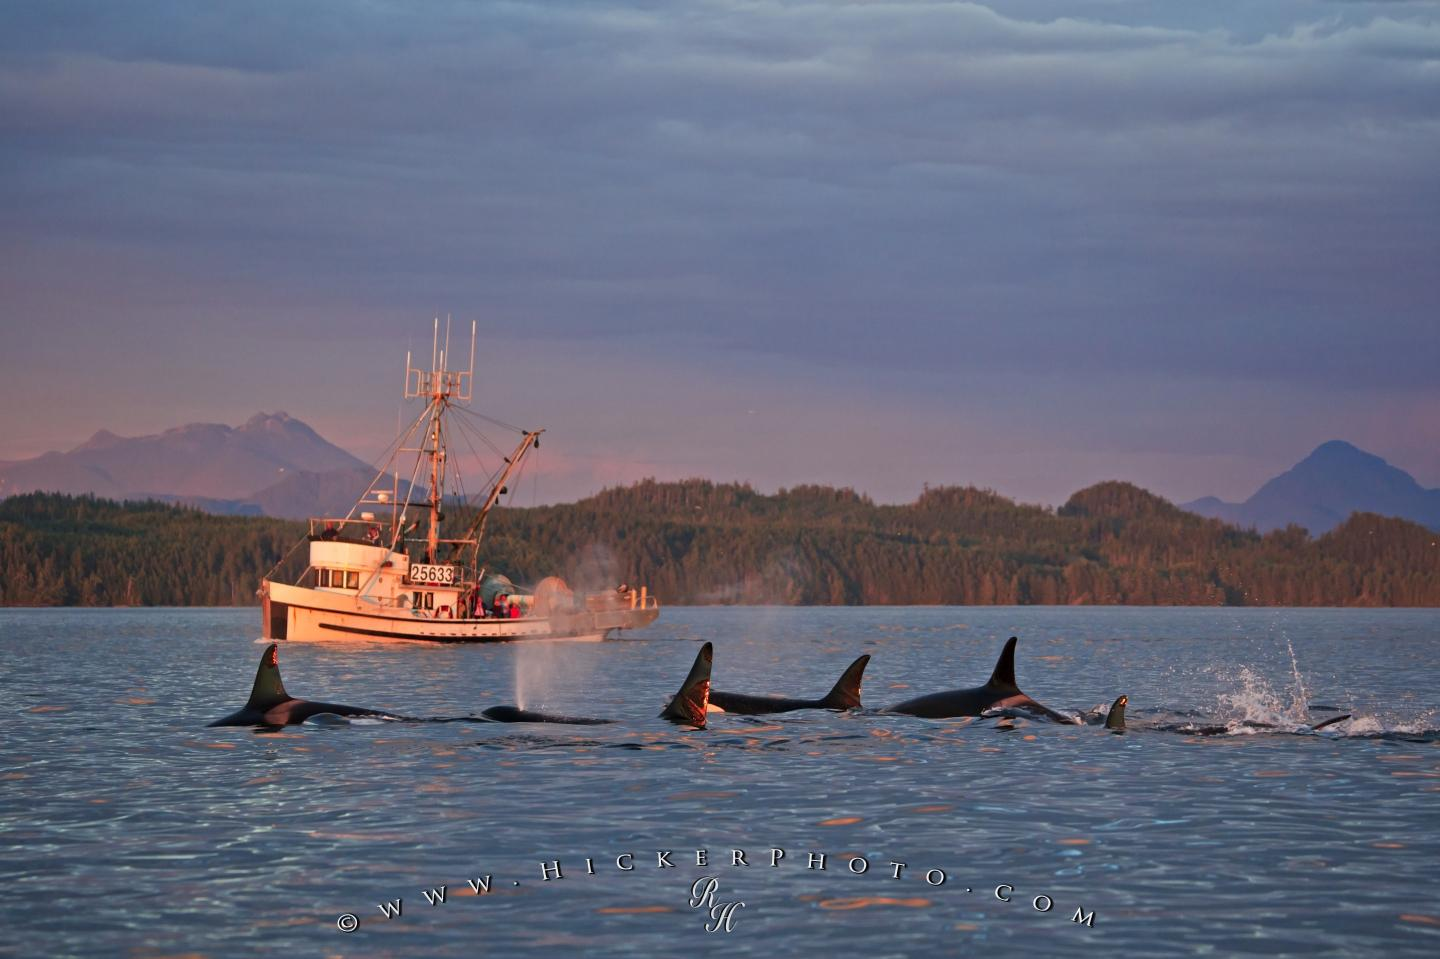 Free wallpaper background: Fishing Boat Orca Pod Vancouver Island